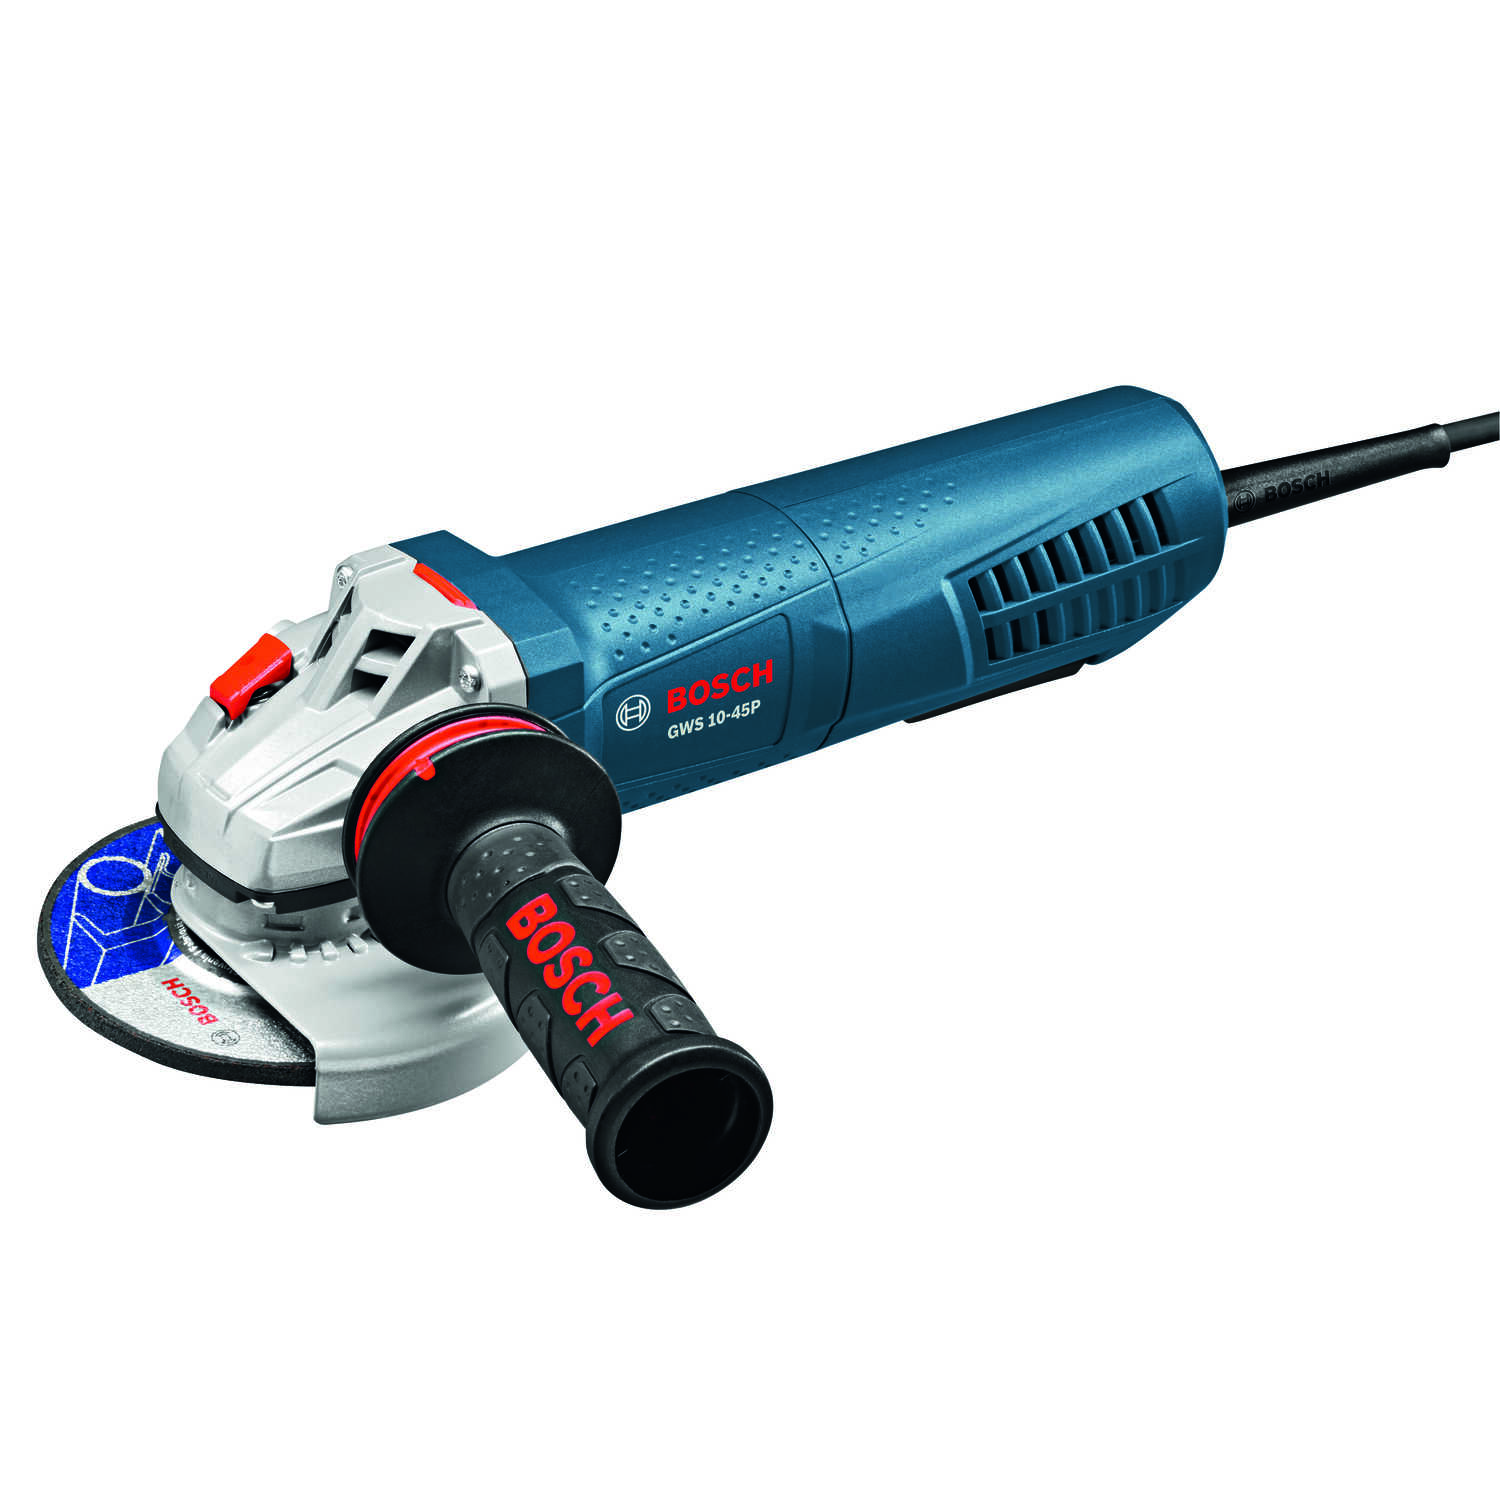 Bosch  4-1/2 in. in. 120 volt 10 amps Corded  Small  Angle Grinder  11500 rpm